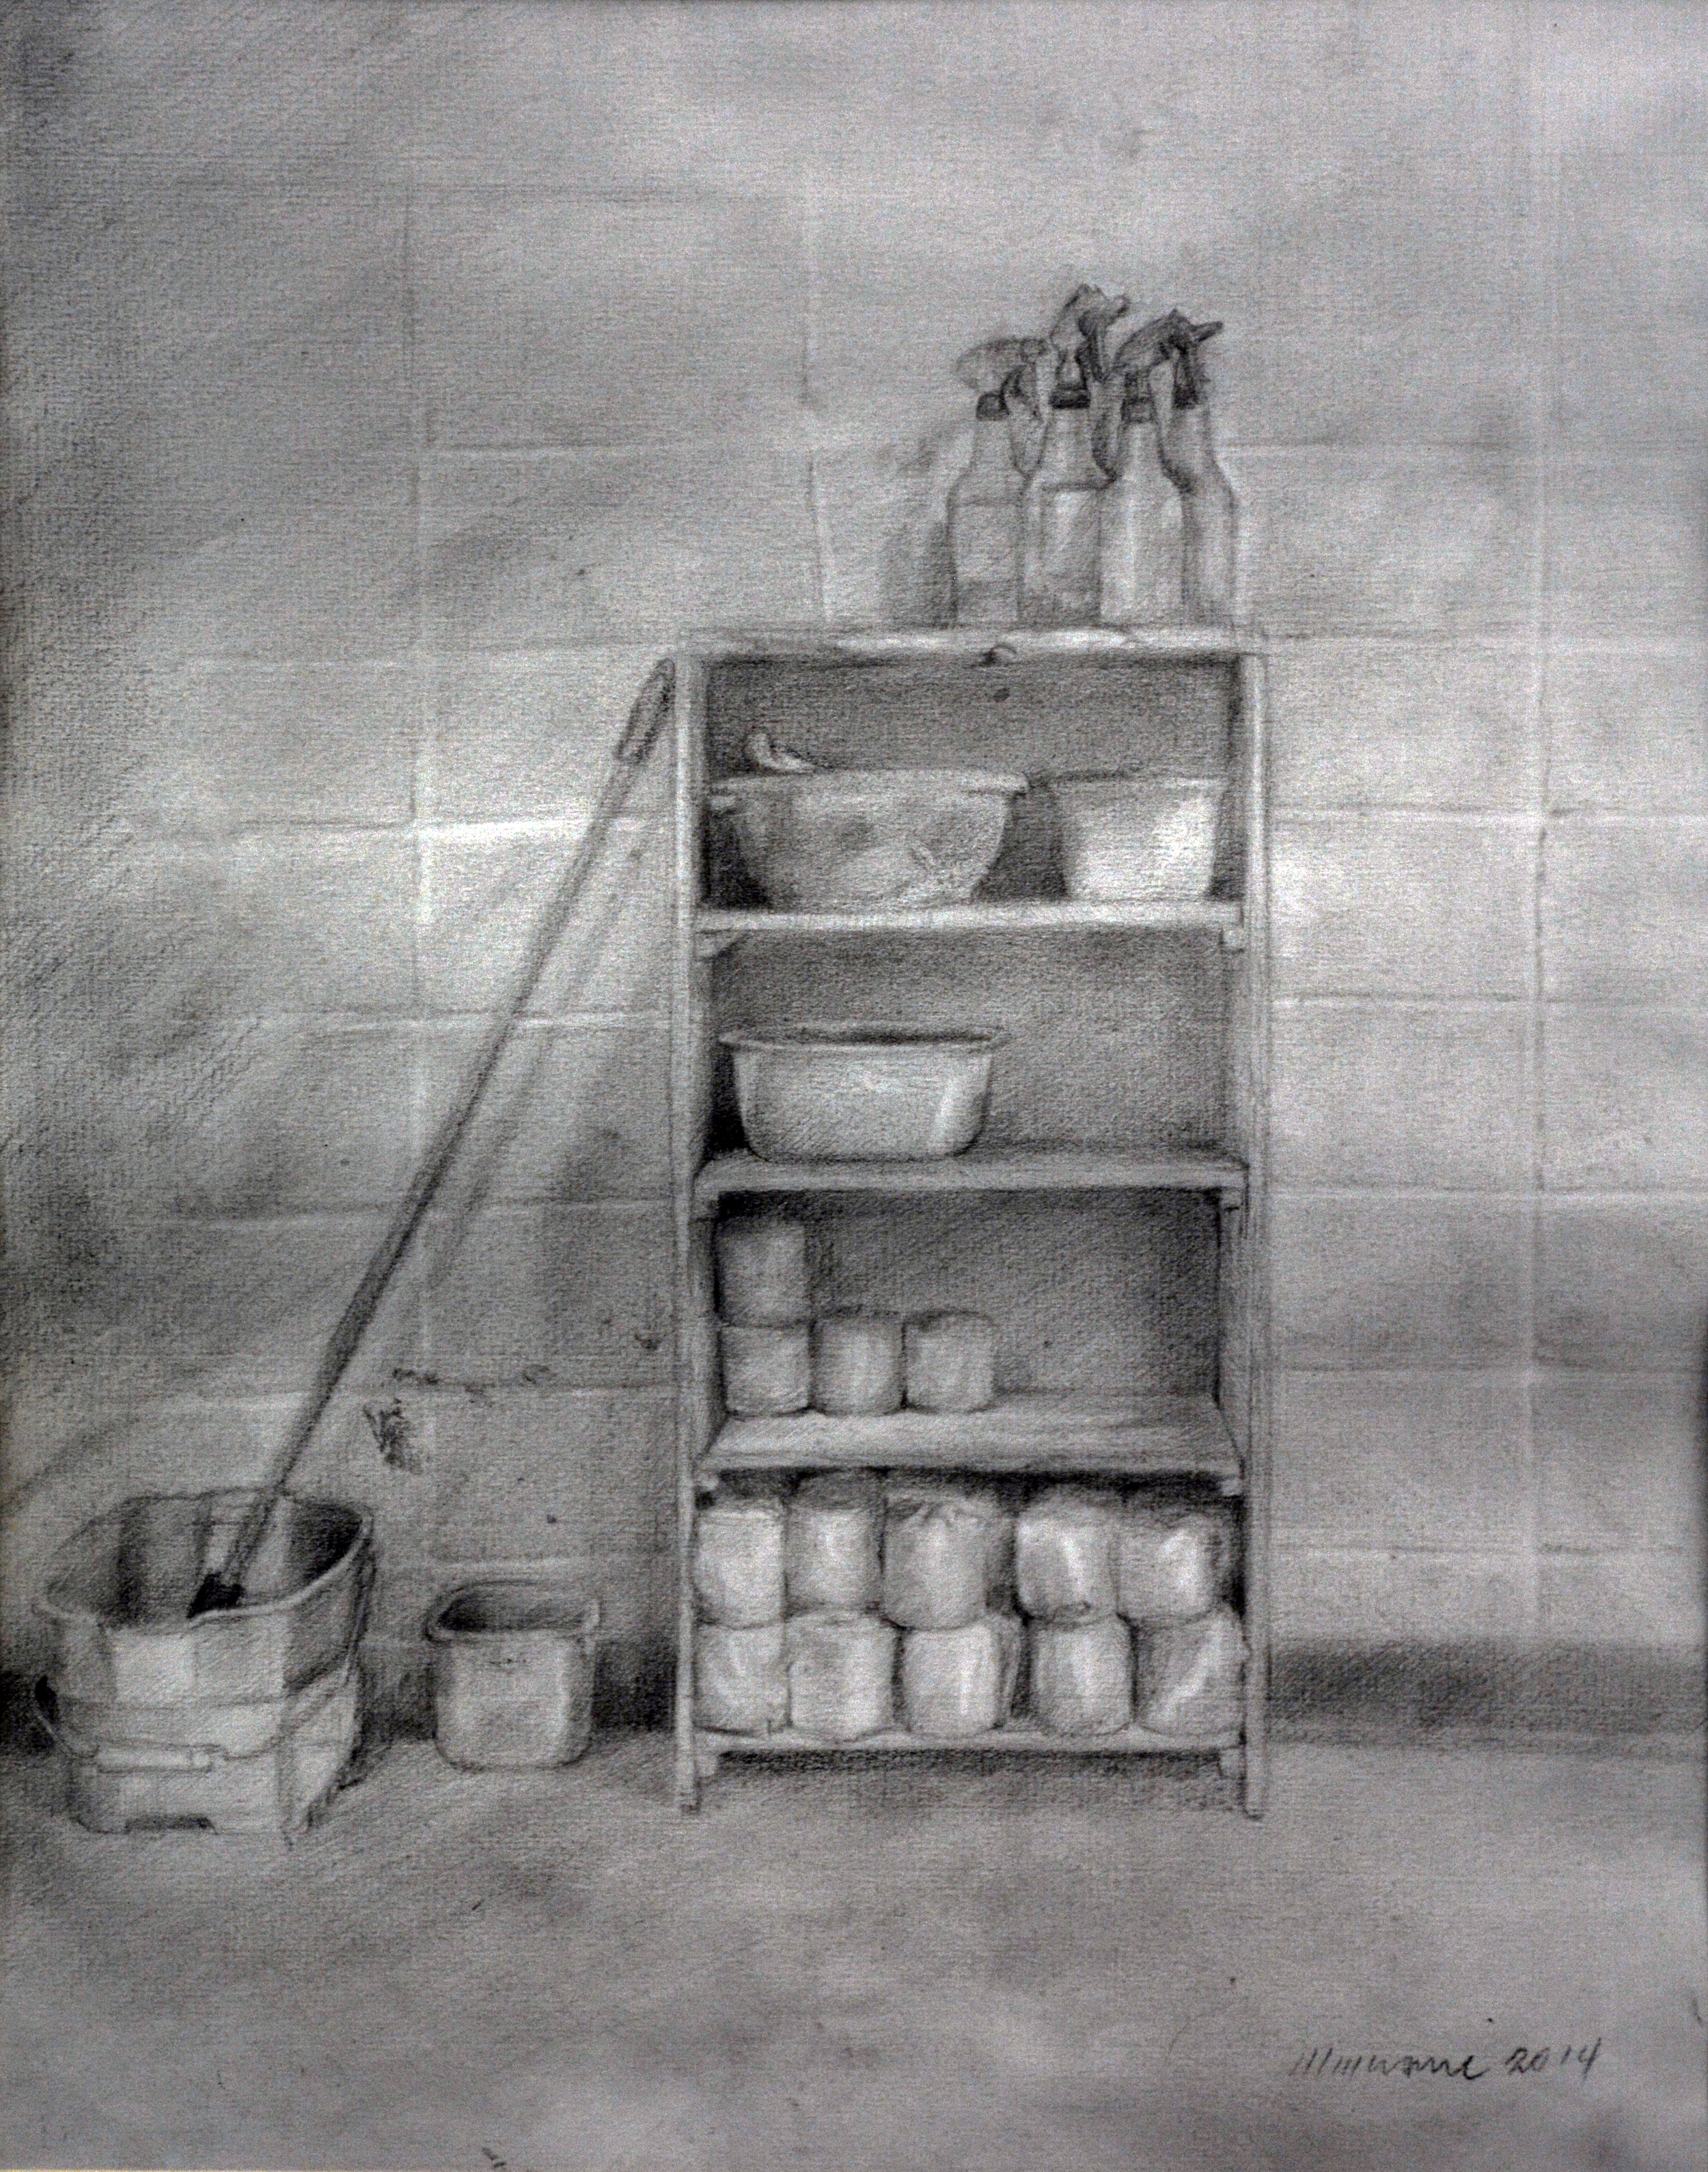 Picasso House Cleaning materials, pencil, new.JPG